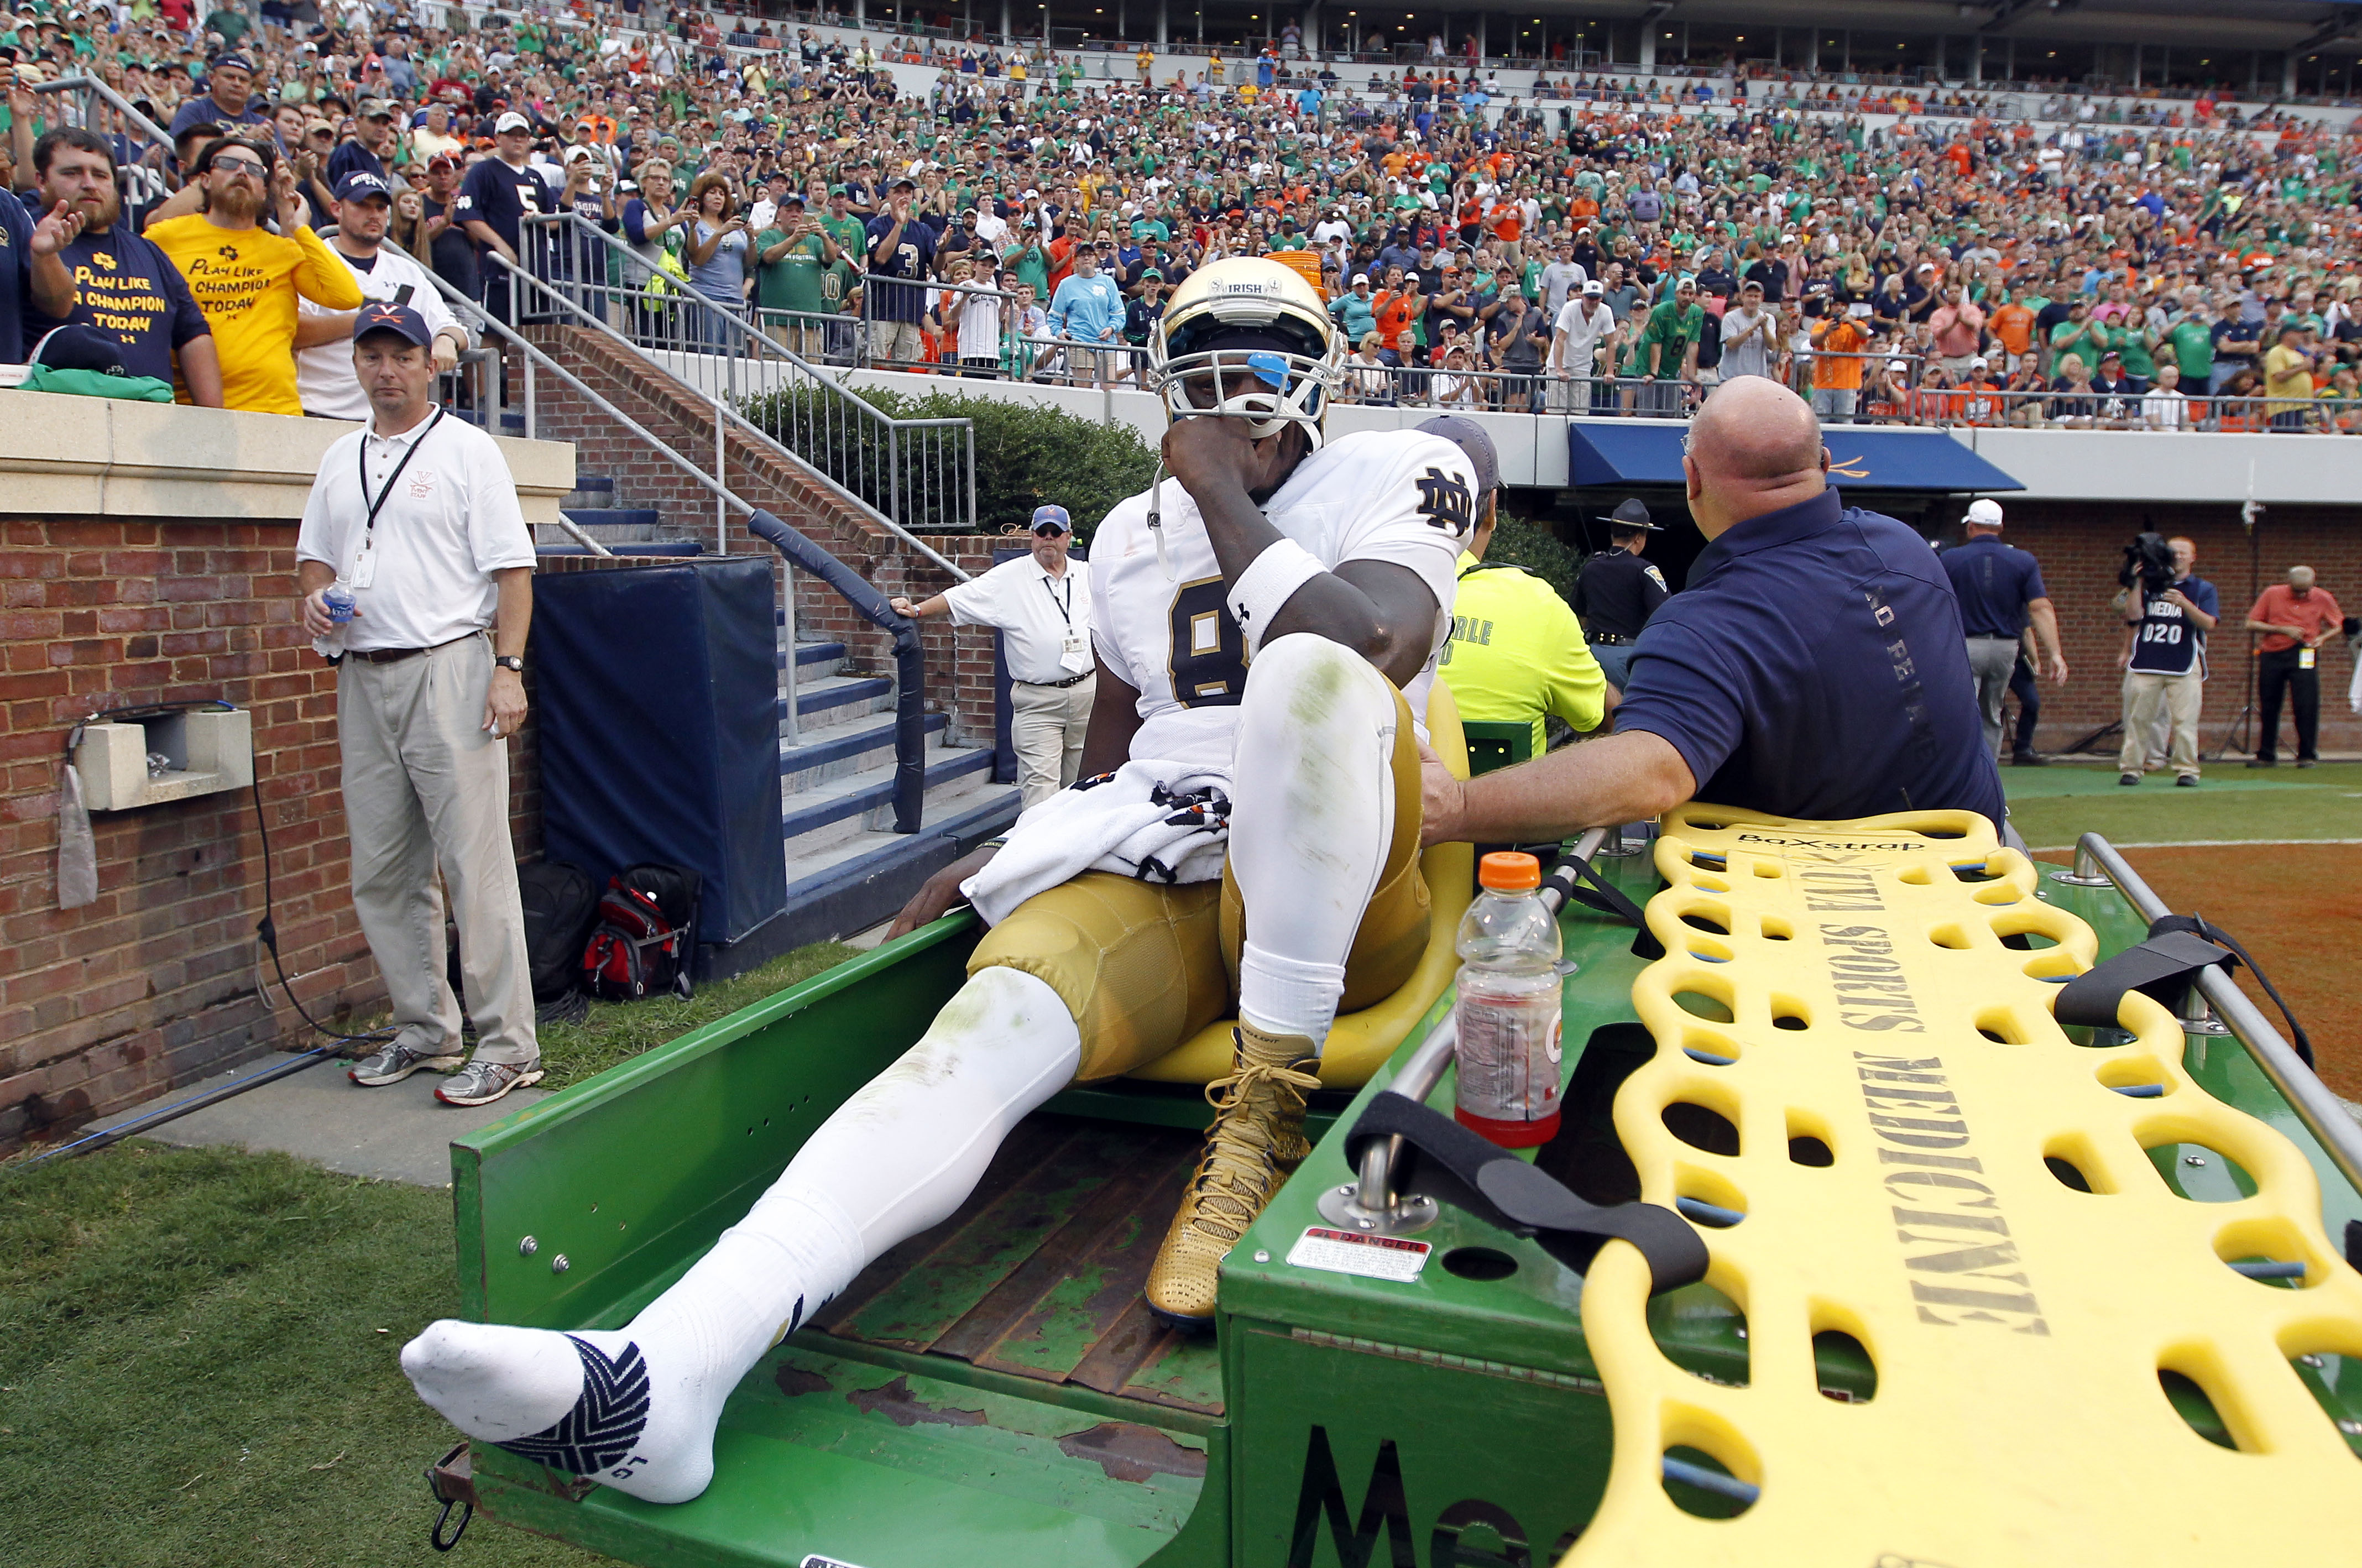 Notre Dame quarterback Malik Zaire (8) is driven off the field after injuring his right ankle during an NCAA college football game against Virginia, Saturday, Sept. 12, 2015, in Charlottesville, Va.  Notre Dame defeated Virginia 34-27. (AP Photo/Andrew Sh